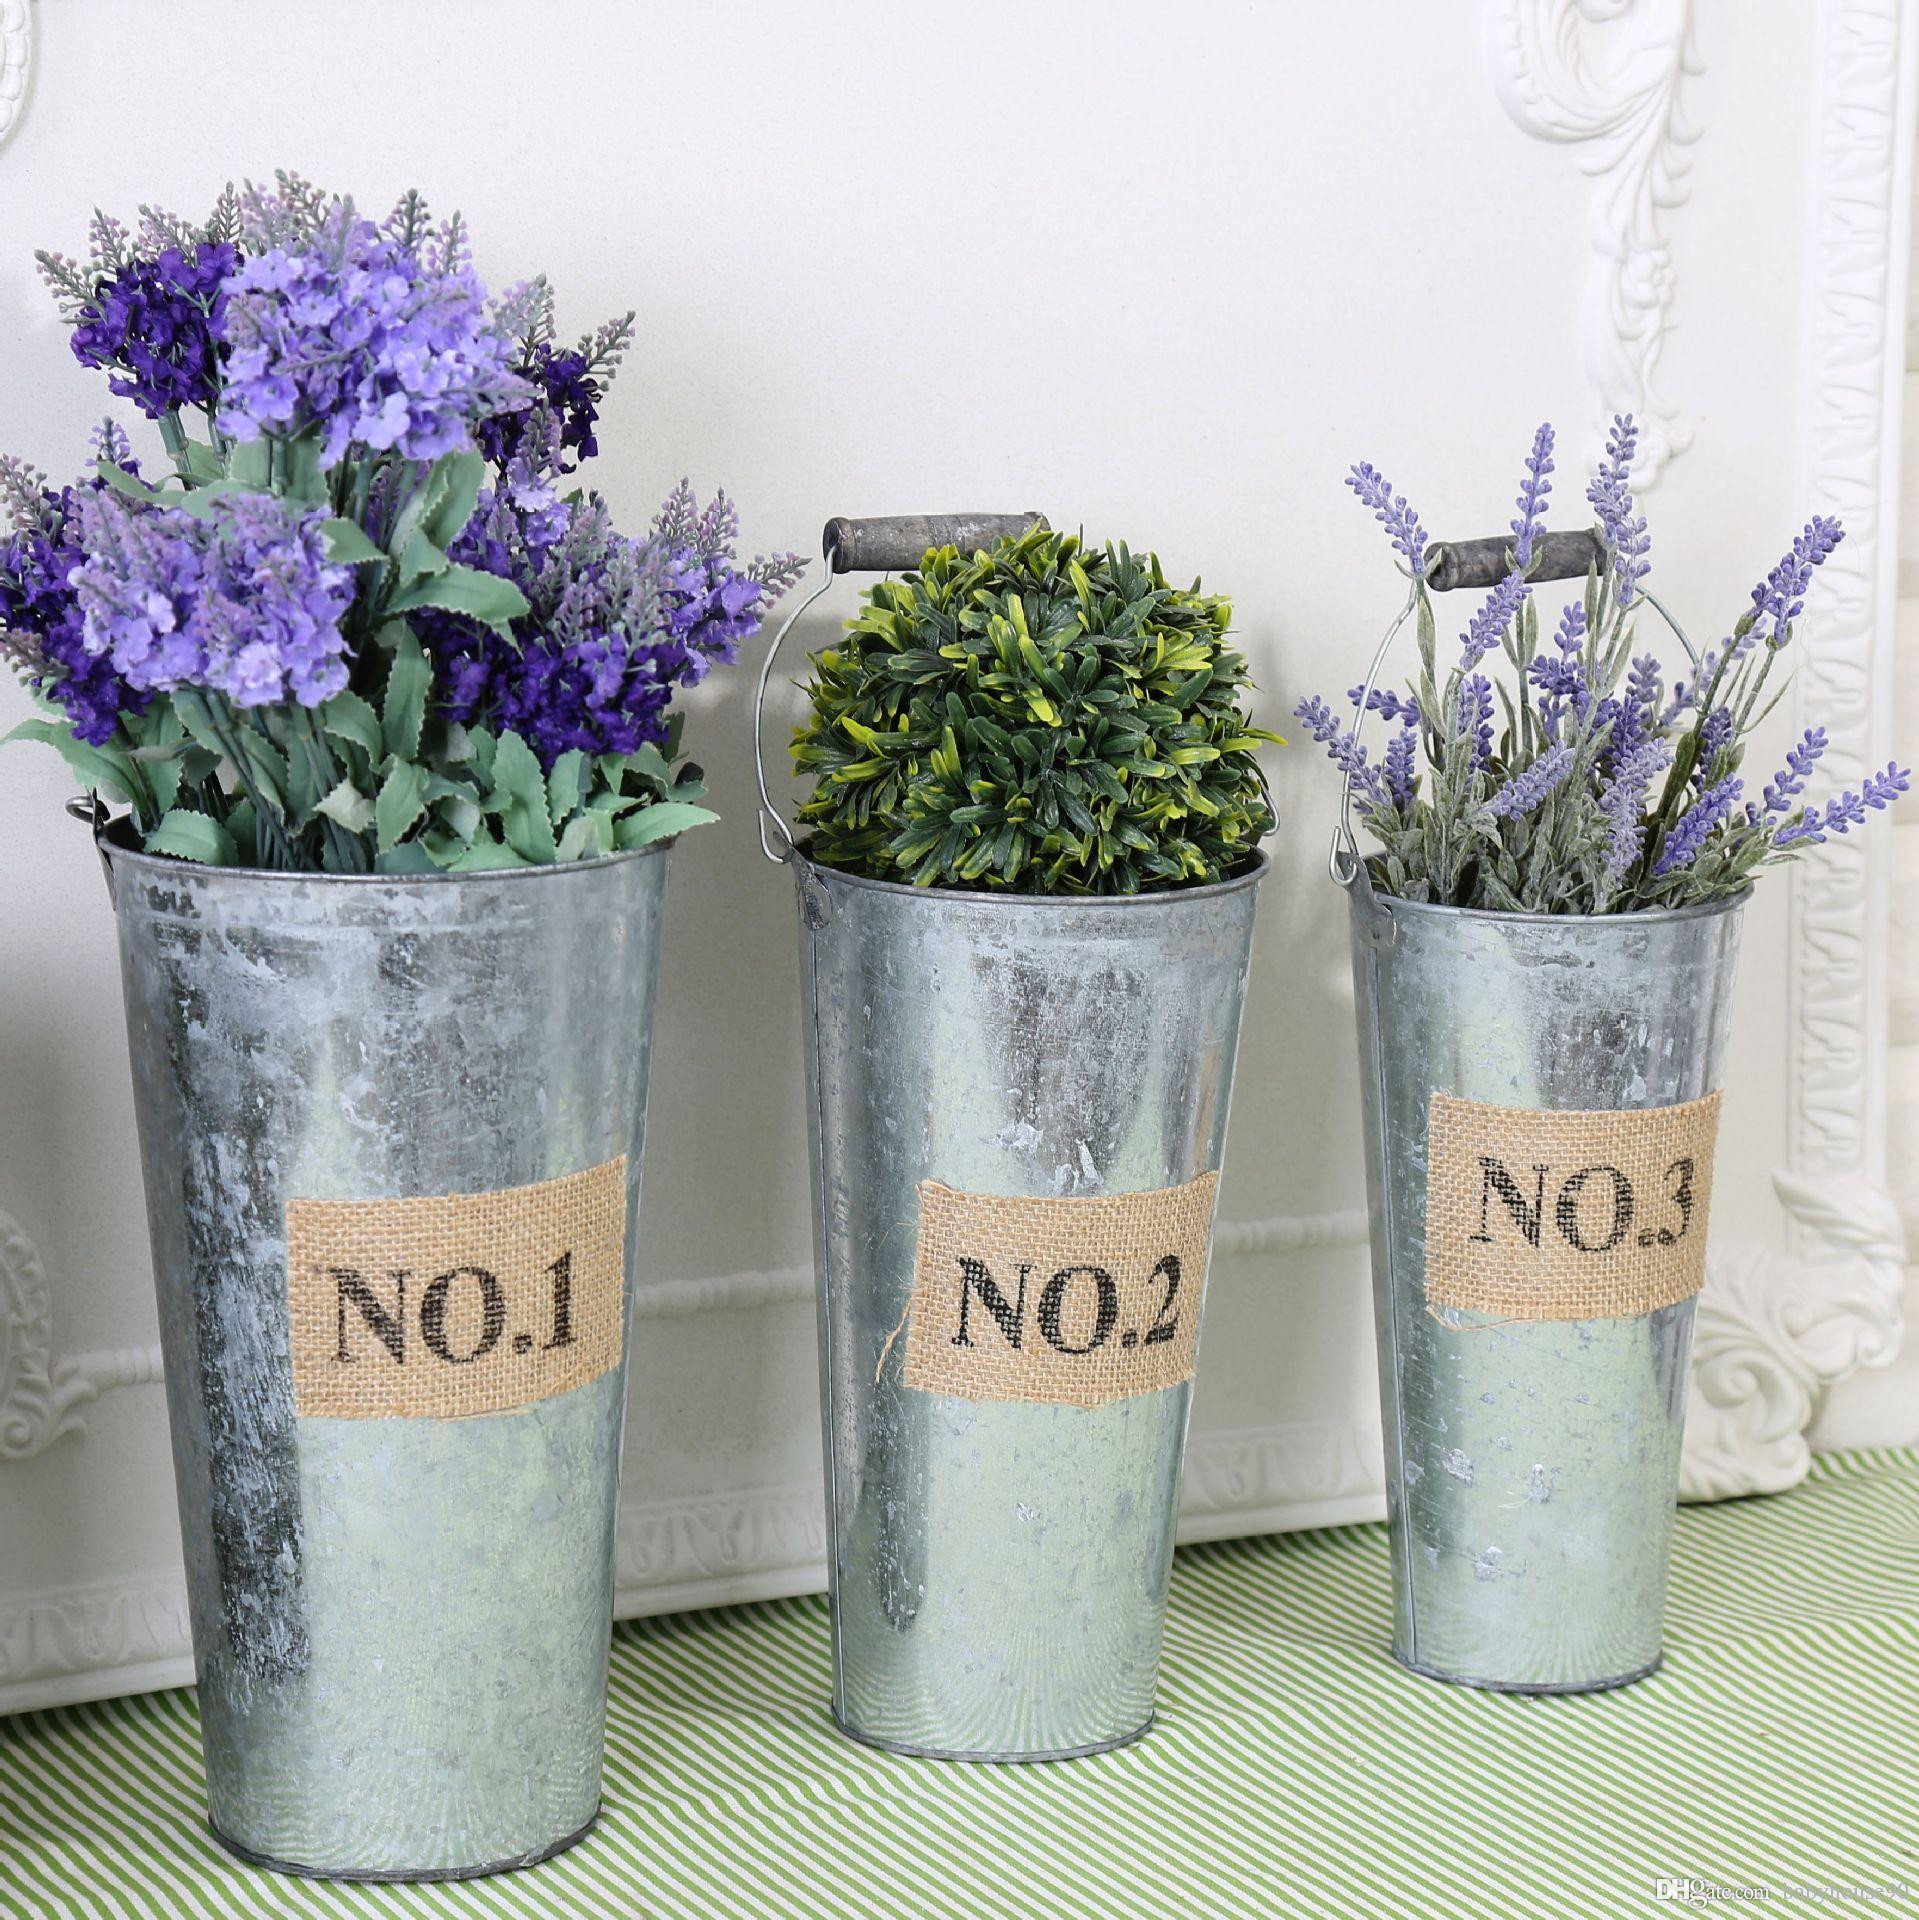 Retro Vases for Sale Of 2018 Garden Pots Retro Succulent Plant Buckets Planter Metal Pertaining to 2018 Garden Pots Retro Succulent Plant Buckets Planter Metal Flowerpot Vintage Rustic Nostalgia Container Vase Desktop Storage Decor 12 8wx3 R From